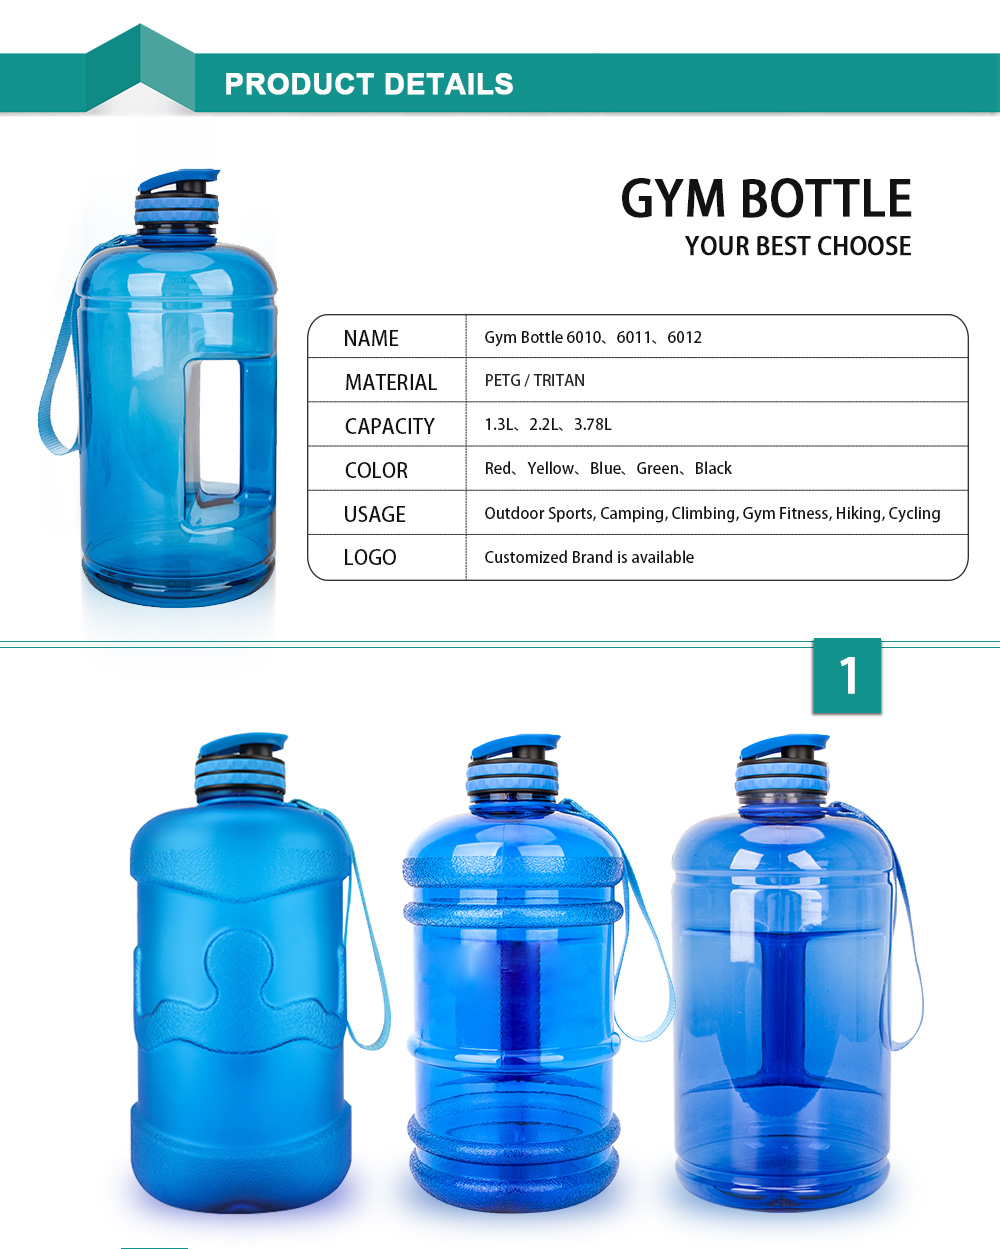 Mlife with custom logo new products 2.2l petg water gym bottles